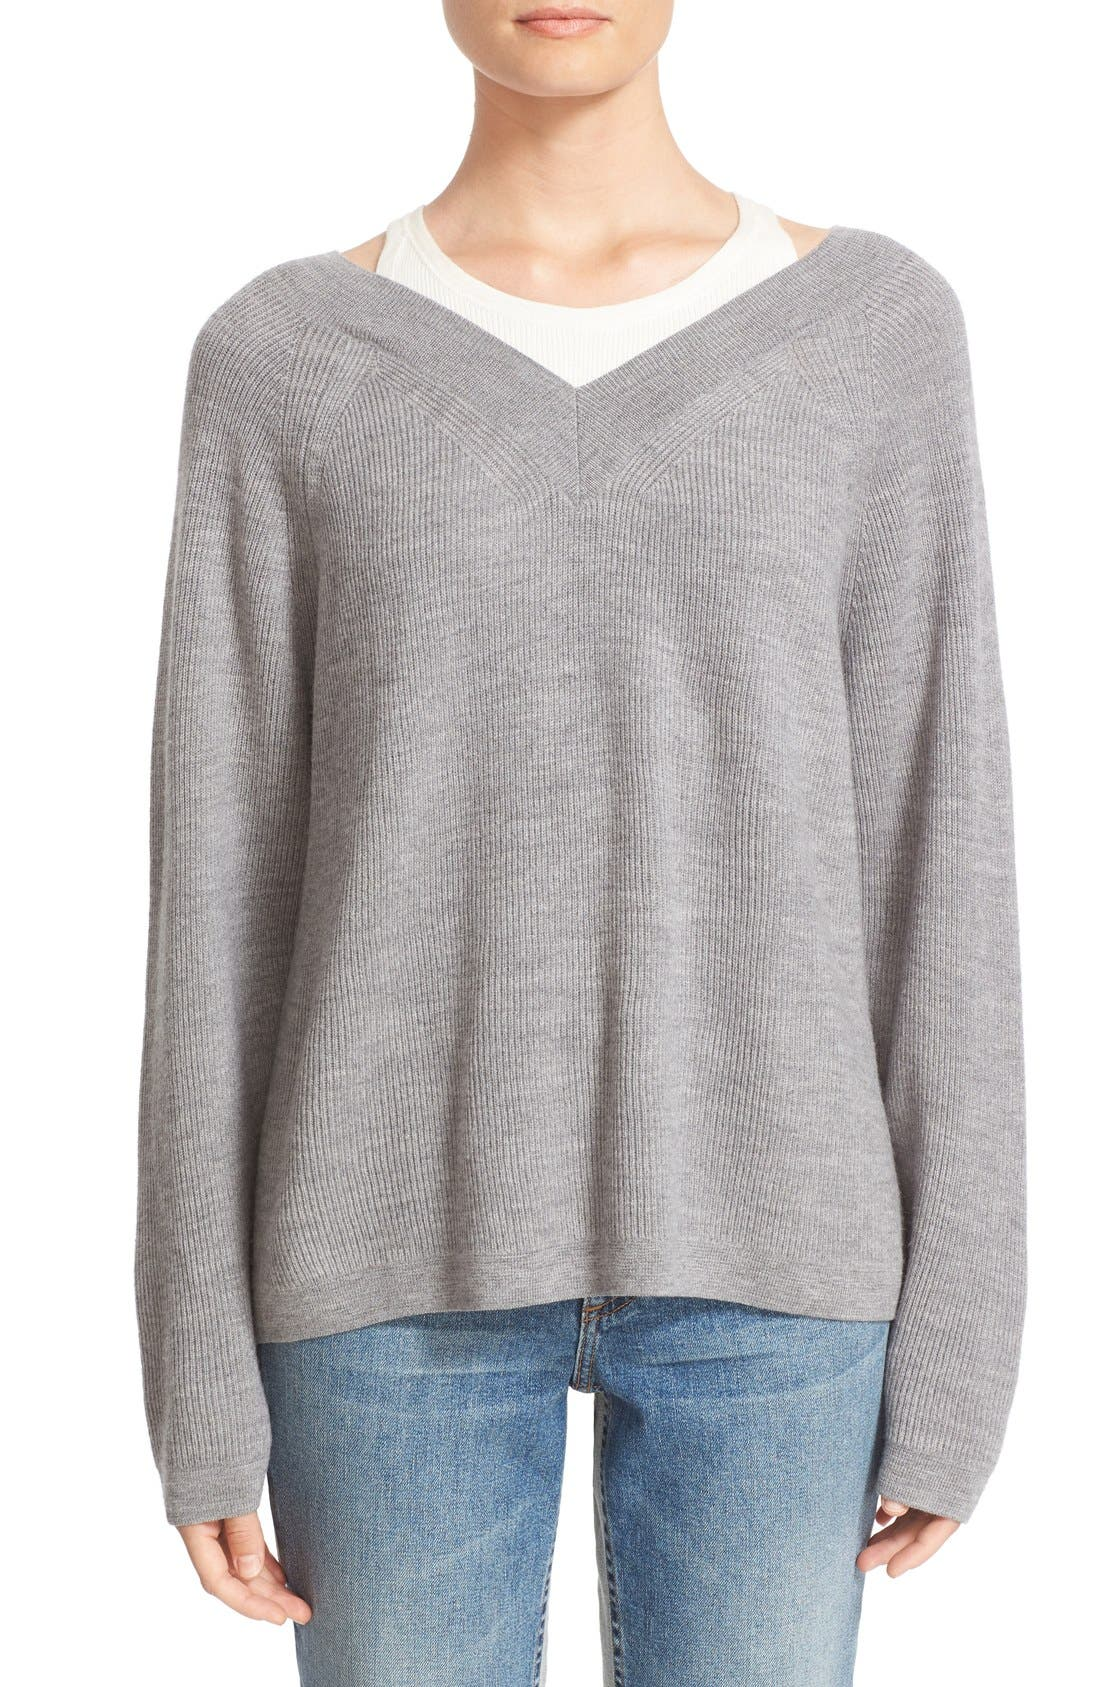 Alternate Image 1 Selected - T by Alexander Wang Layered Merino Wool Pullover